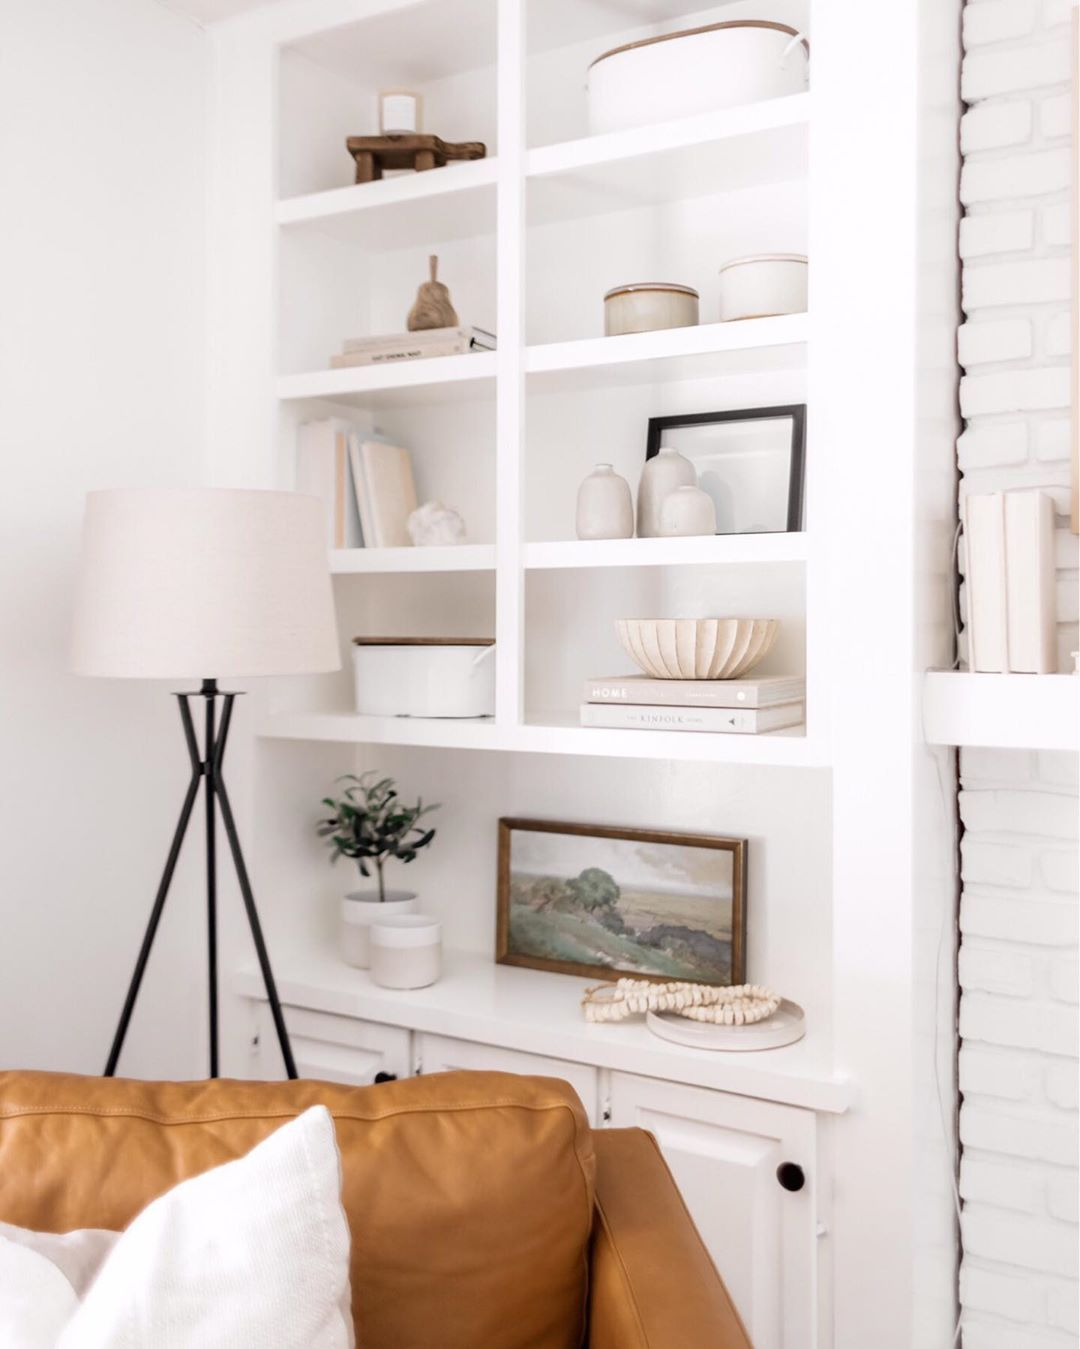 """Photo of KATIE STAPLES's Instagram profile post: """"Shelf Styling Motto: Use a monochromatic color scheme with varying tones and textures to create visual interest that makes the space feel…"""""""